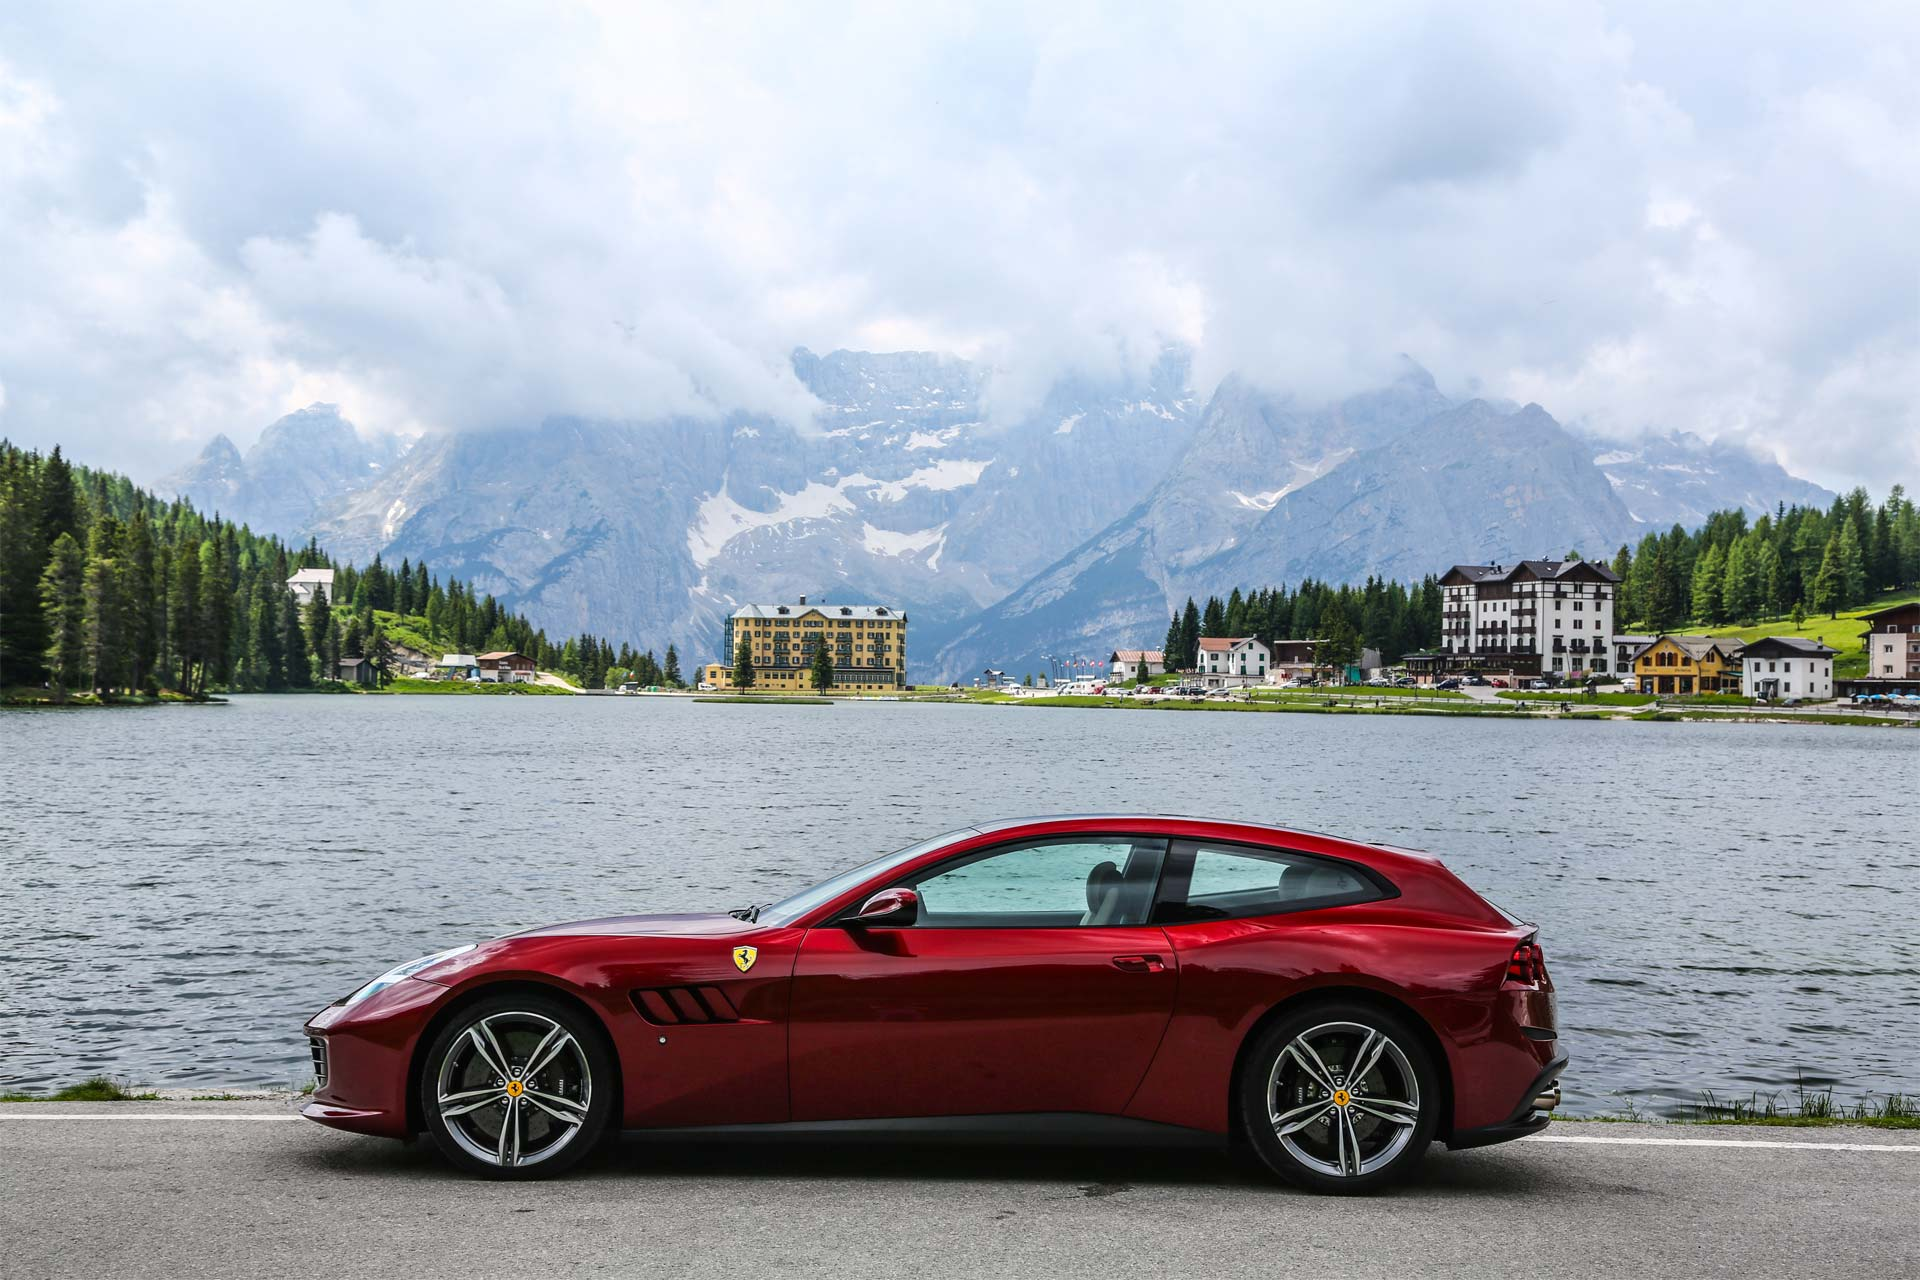 Ferrari Gtc4lusso And Gtc4lusso T Launched In India